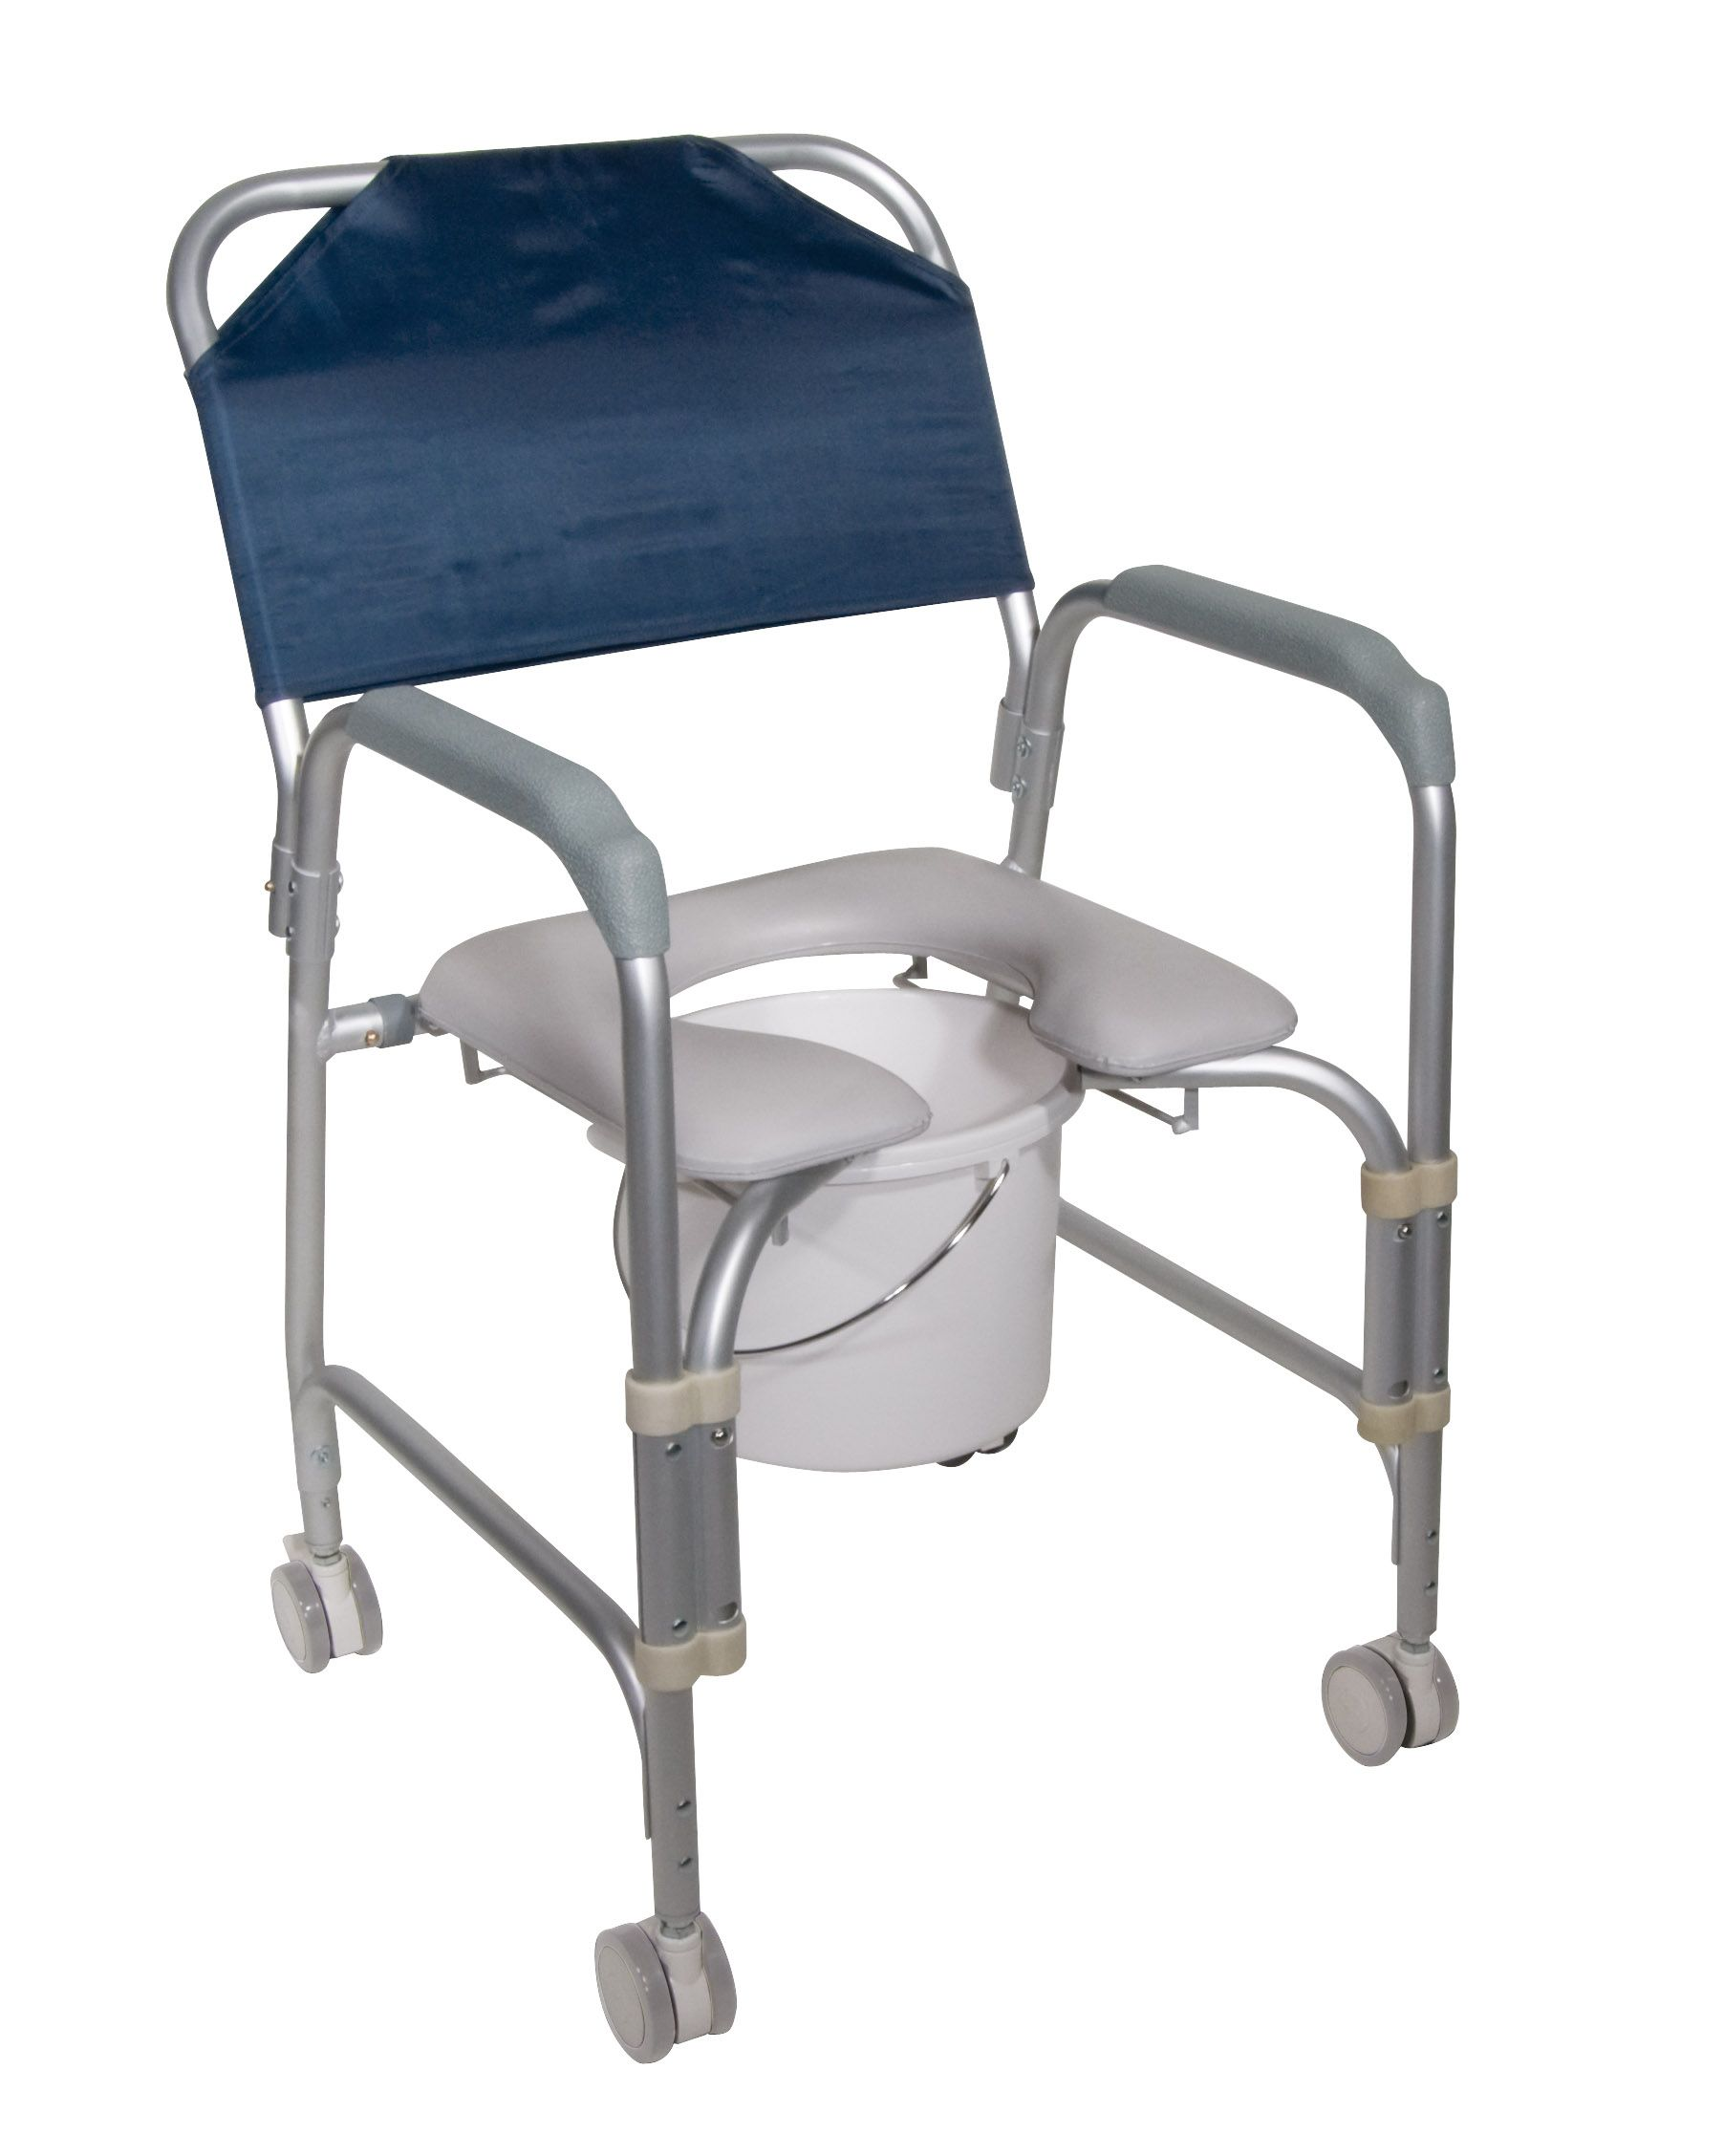 Shower mode Chair with Wheels AccessibleLivingTips Learn